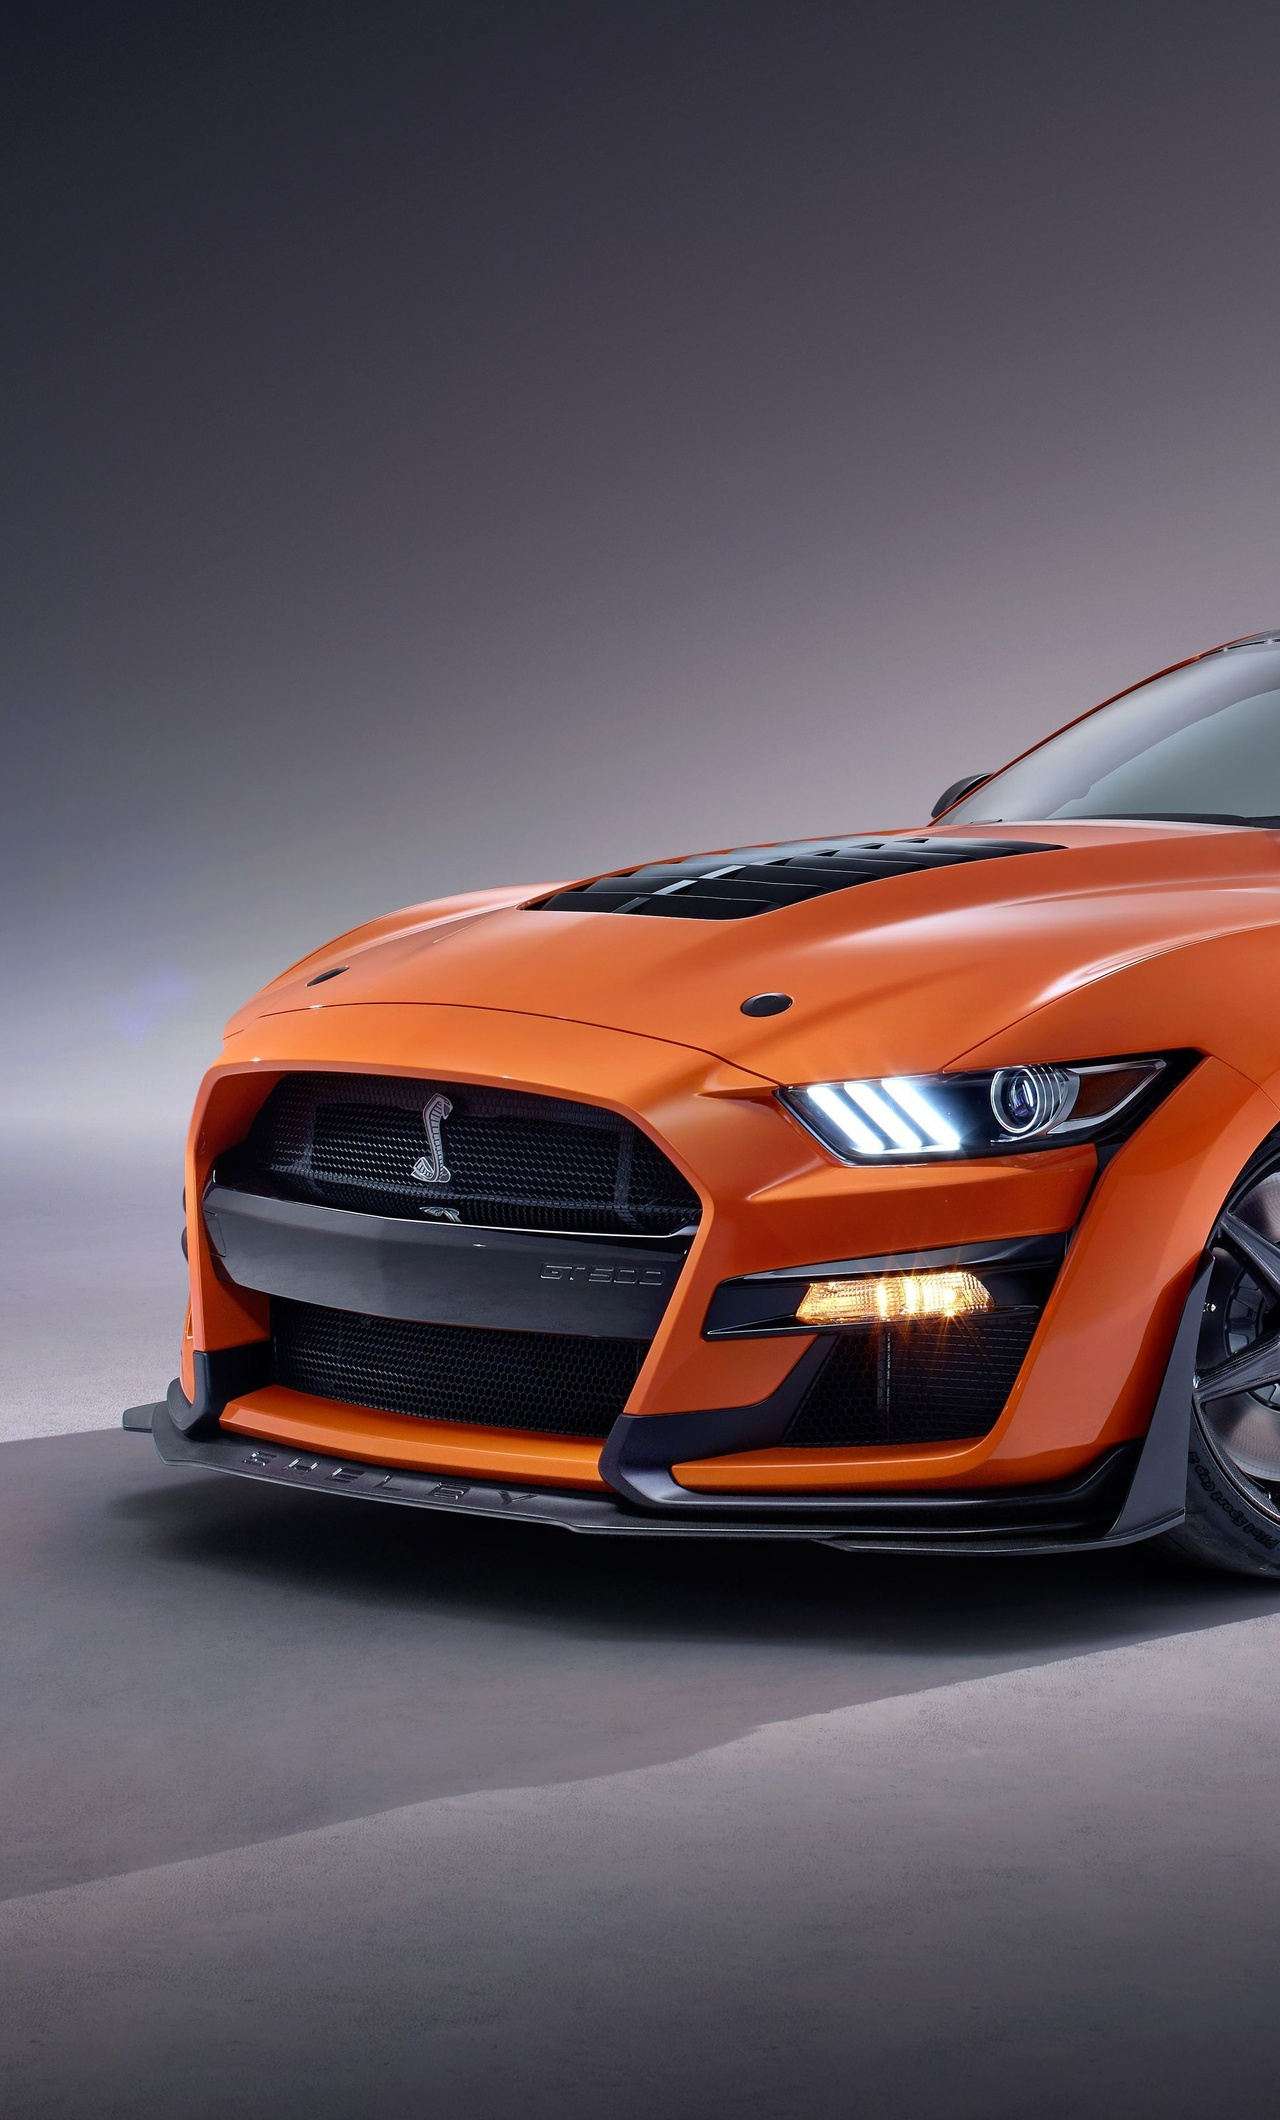 1280x2120 2020 Ford Mustang Shelby GT500 5k iPhone 6+ HD ...